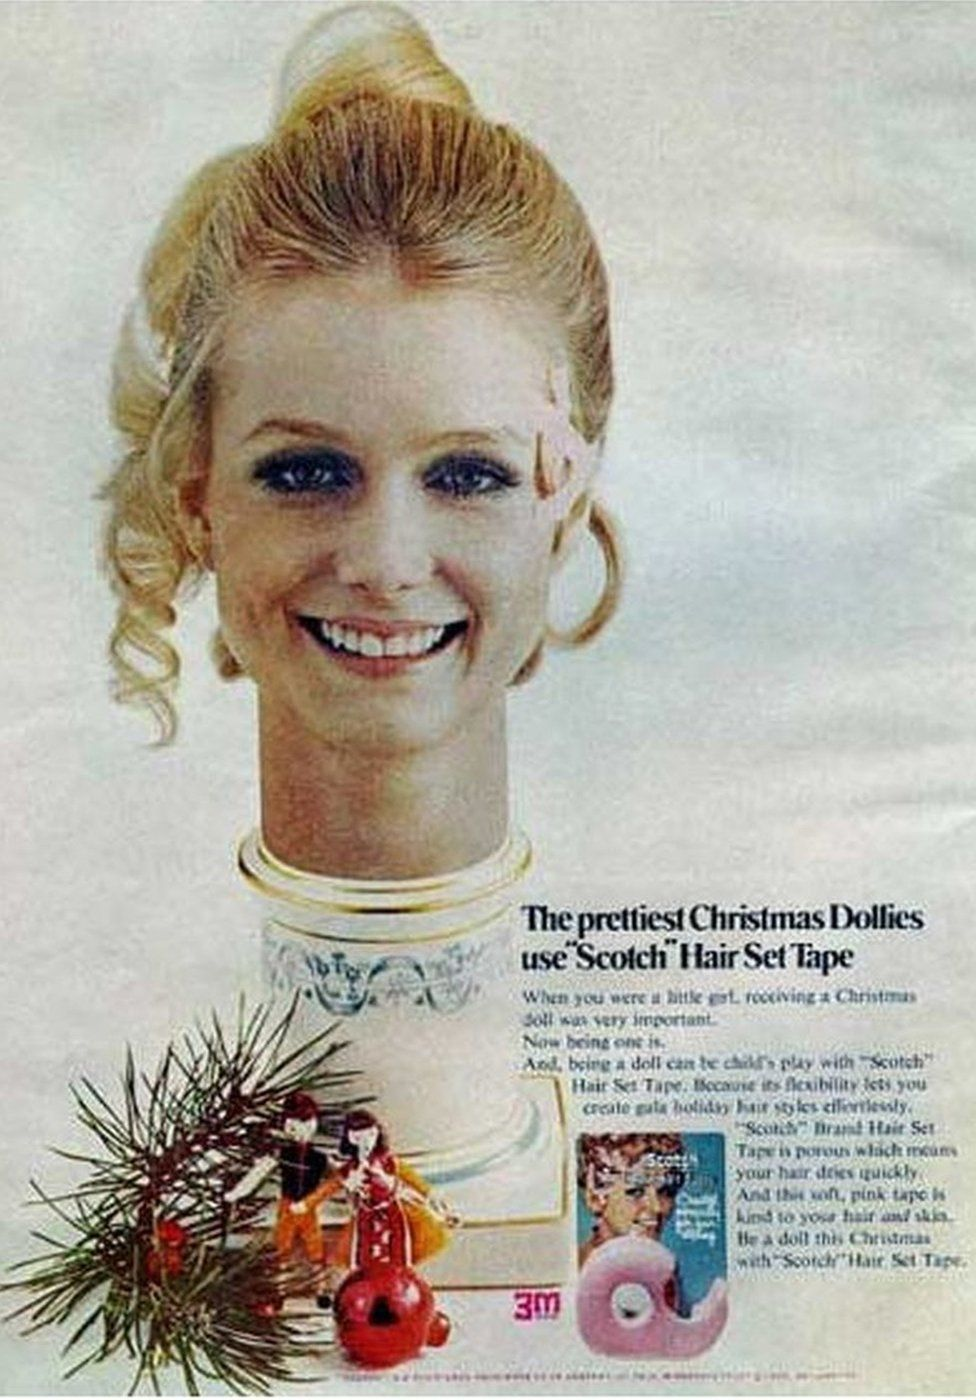 Advert for hair tape